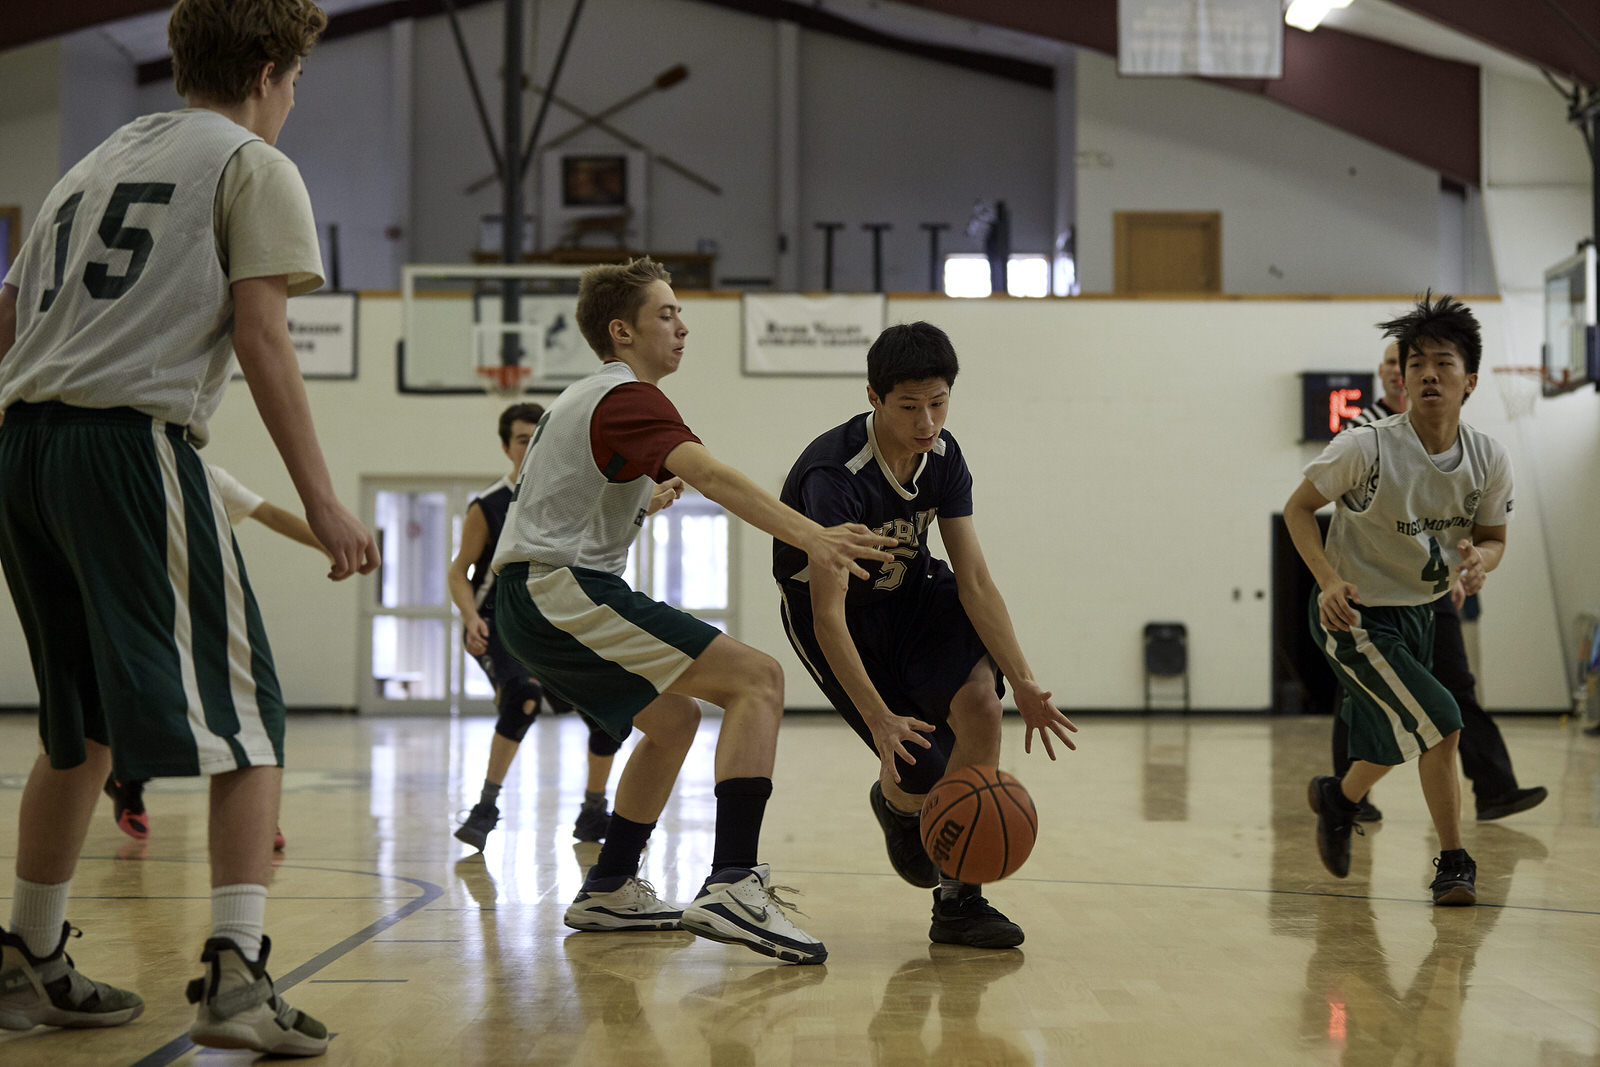 Dublin JV Boys Basketball vs High Mowing School - Jan 26 2019 - 0142.jpg